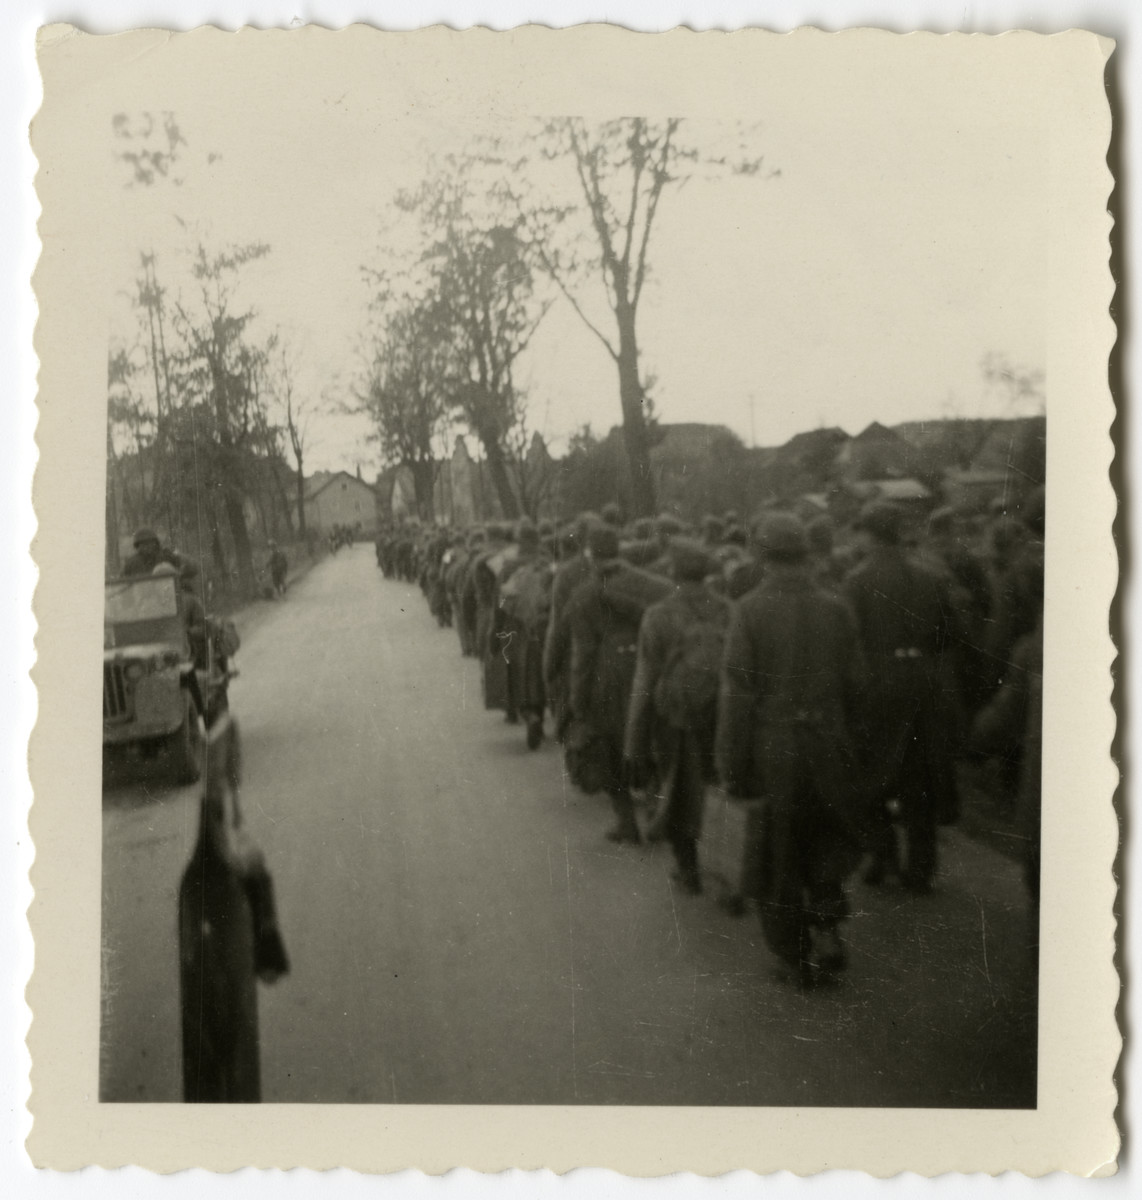 German POWs, captured by the American 261st Regiment, march down the road of an unidentified village.